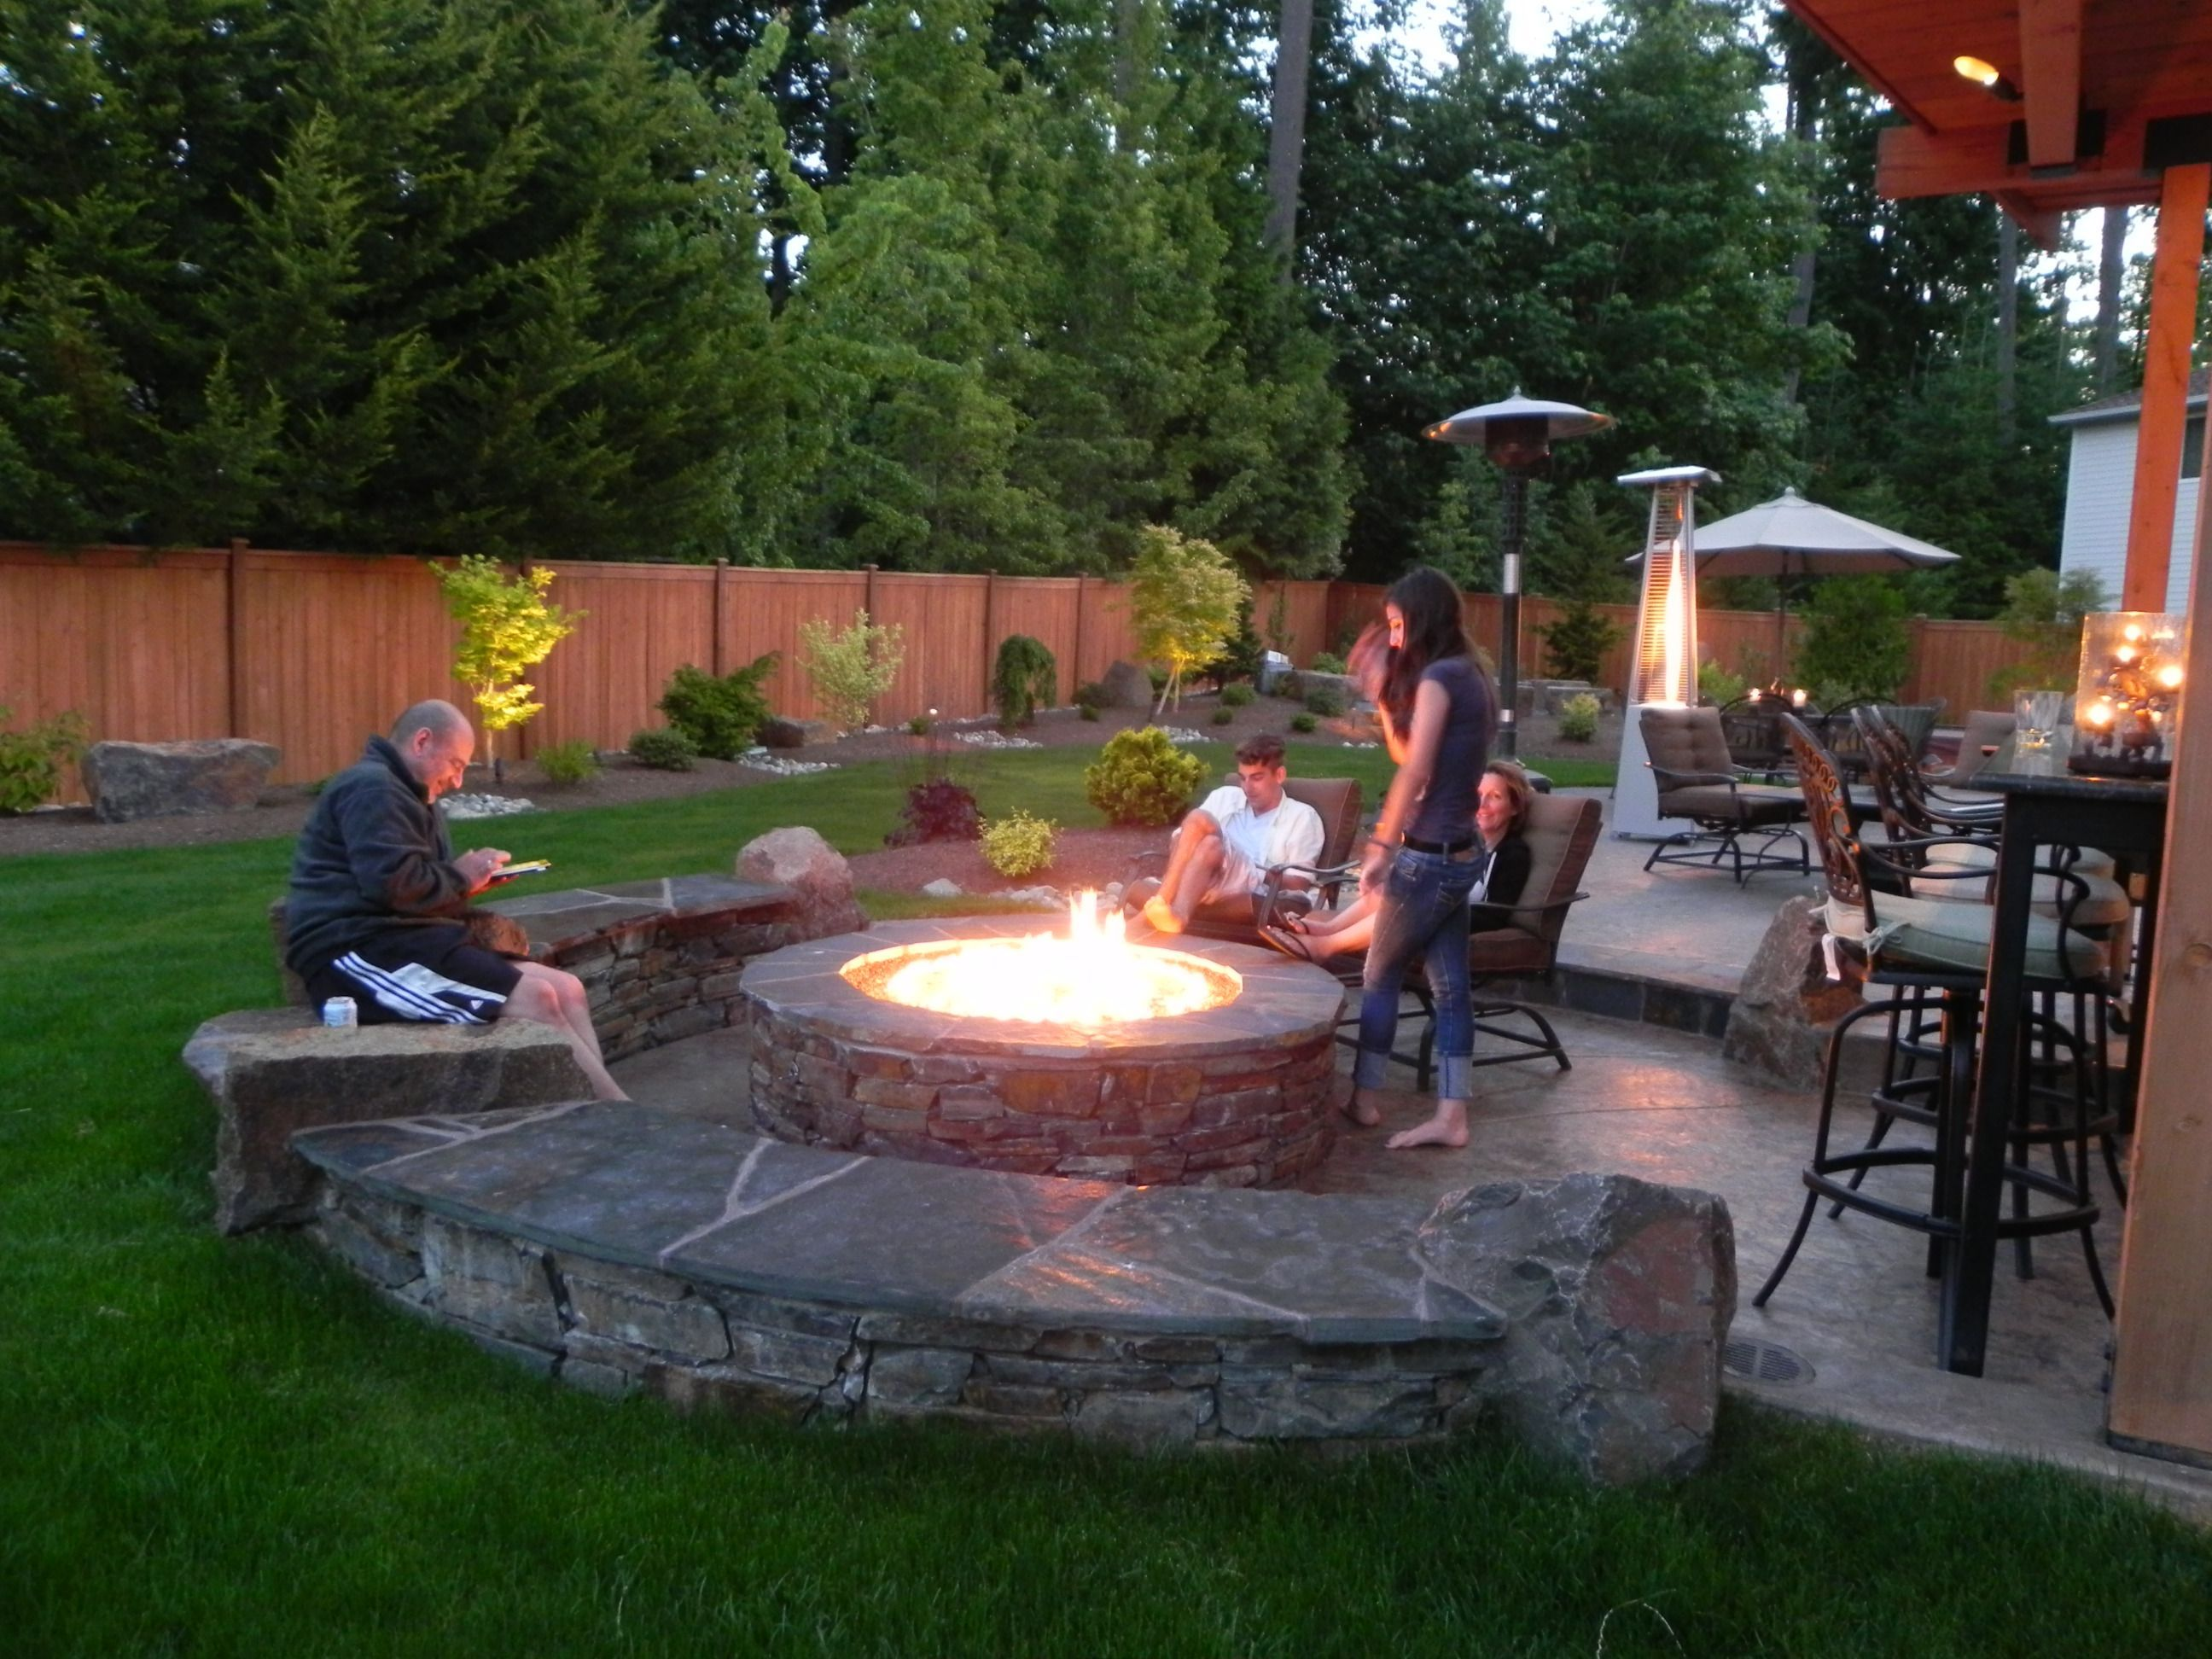 Backyard Landscaping Ideas With Fire Pit fire pit douglas landscape construction san jose ca Garden Design With Diy Backyard Landscaping And Wood Patio Ideas Fire Pit Homedreamworks Pw Courtyard Gardens